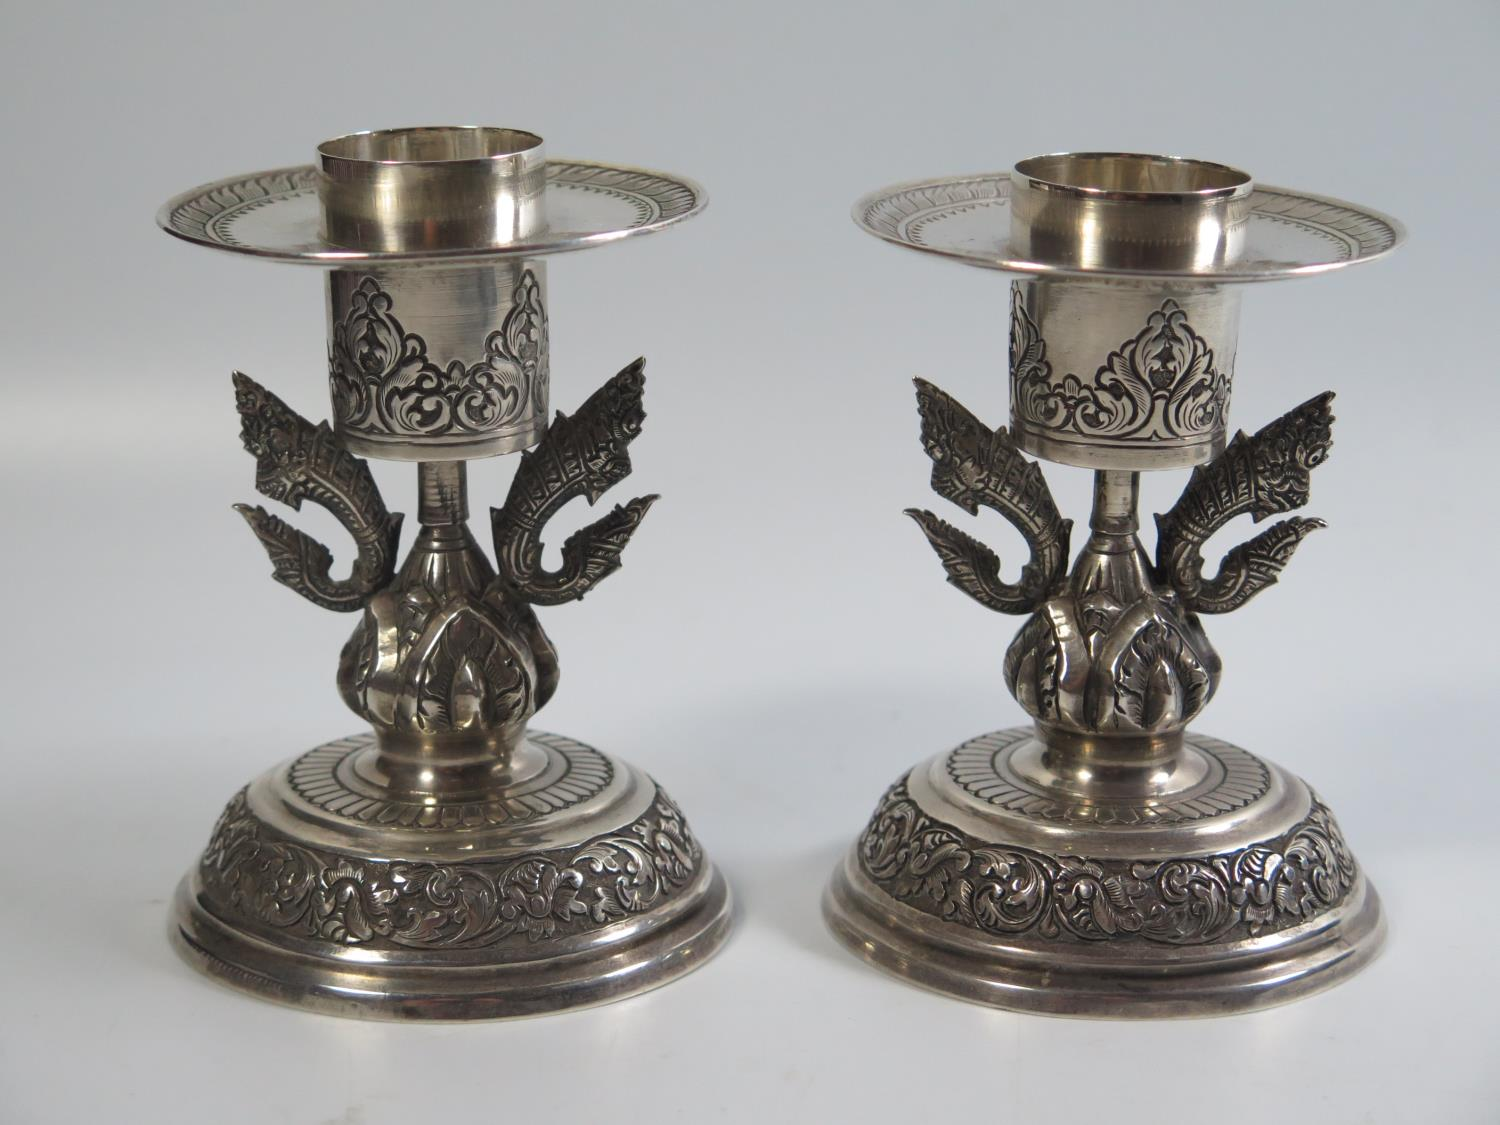 Lot 408 - A Pair of Cambodian Silver Candlesticks, marked THAN CAMBODGE TOCO, 263g, 10.5cm